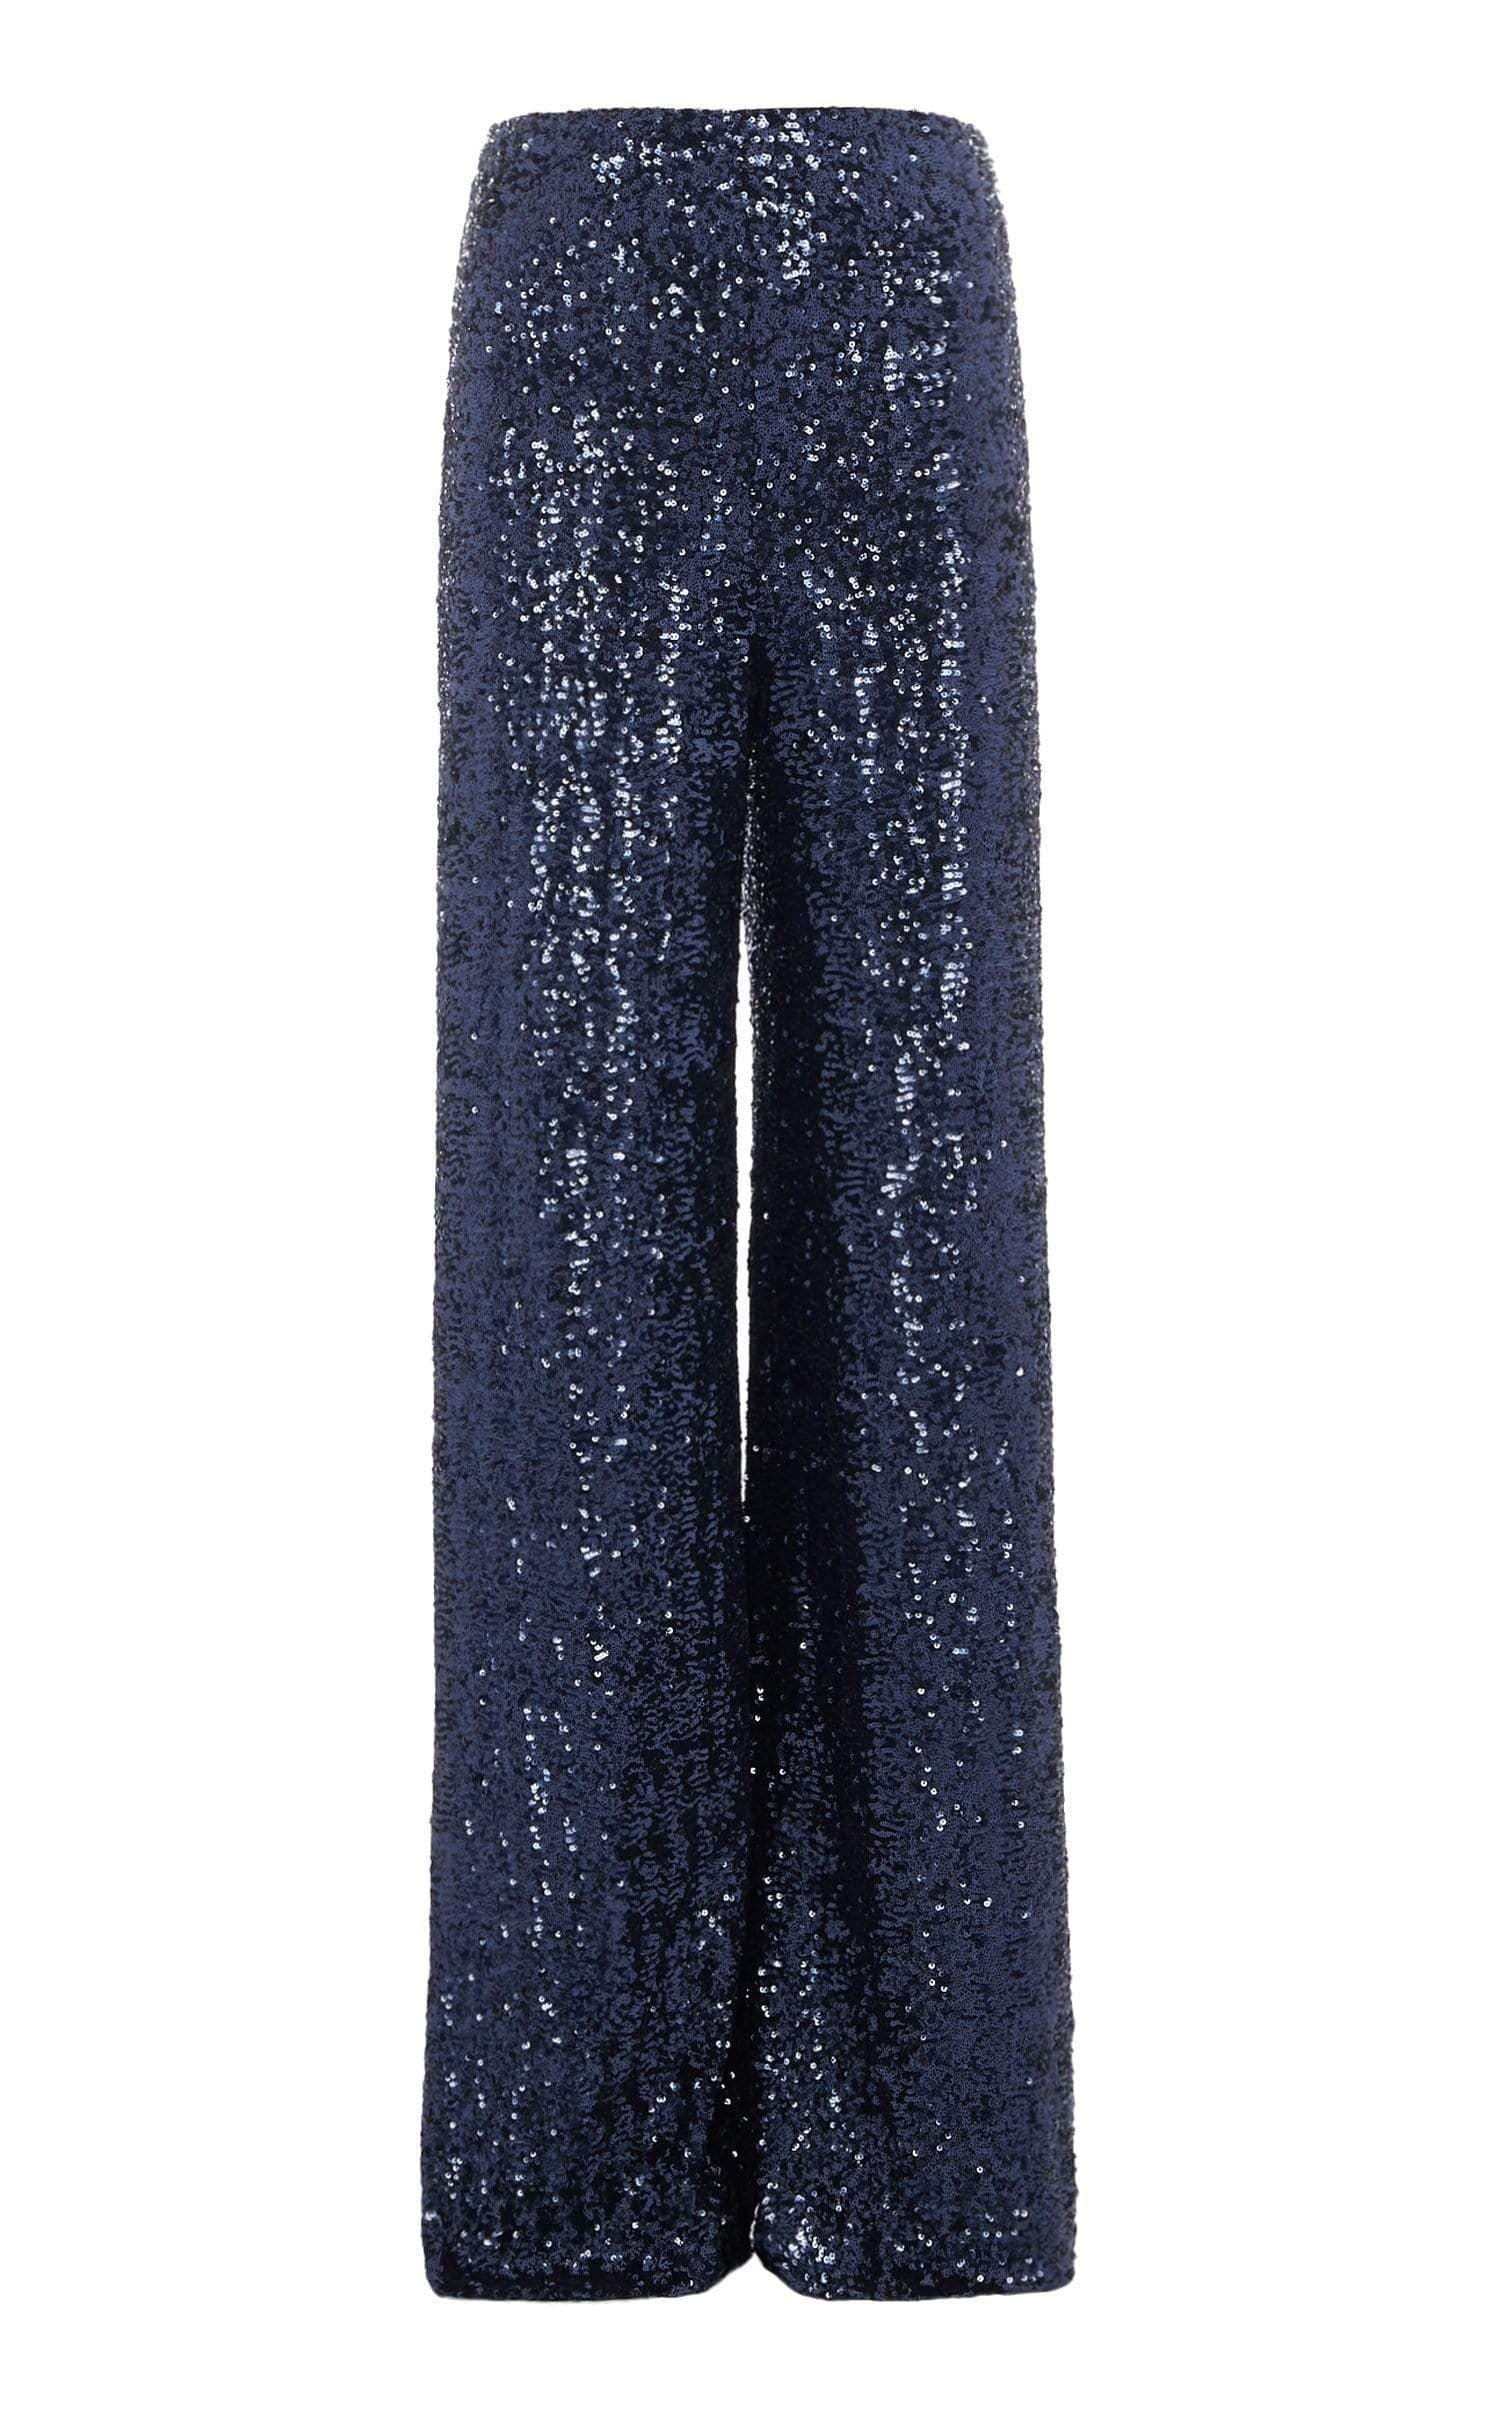 Fabien Trouser In Navy from Roland Mouret